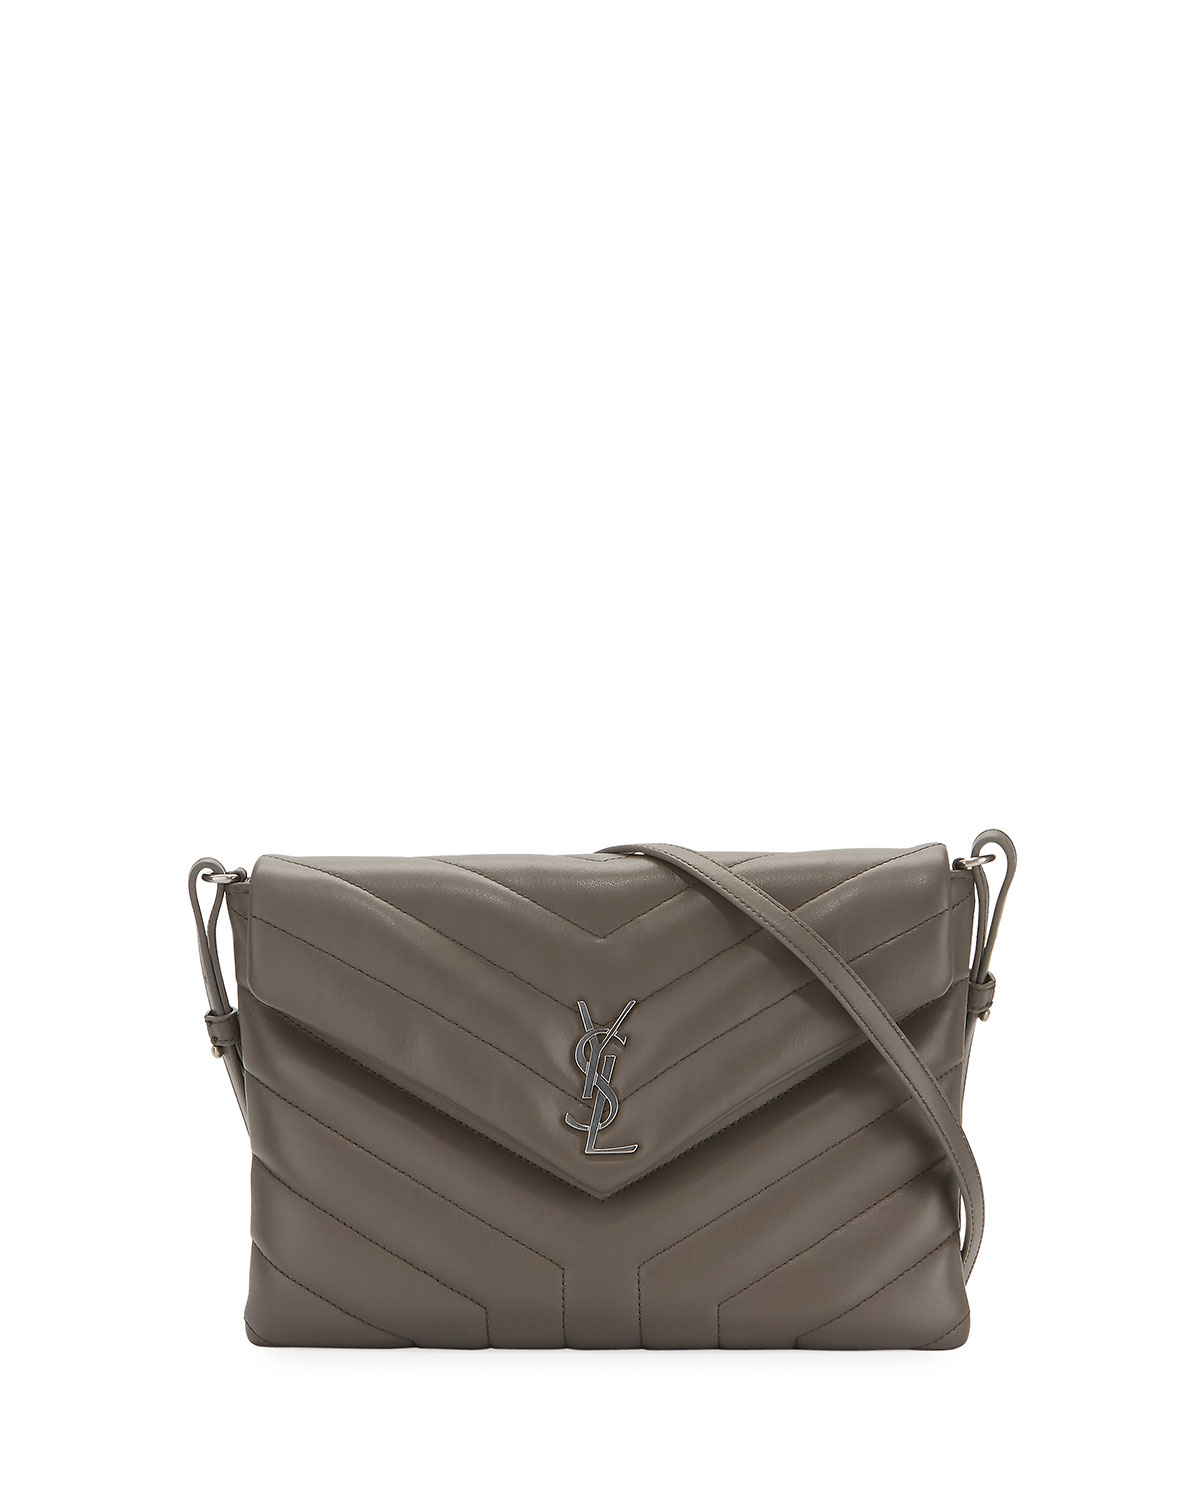 Saint Laurent Loulou Mini Monogram Crossbody Bag Neiman